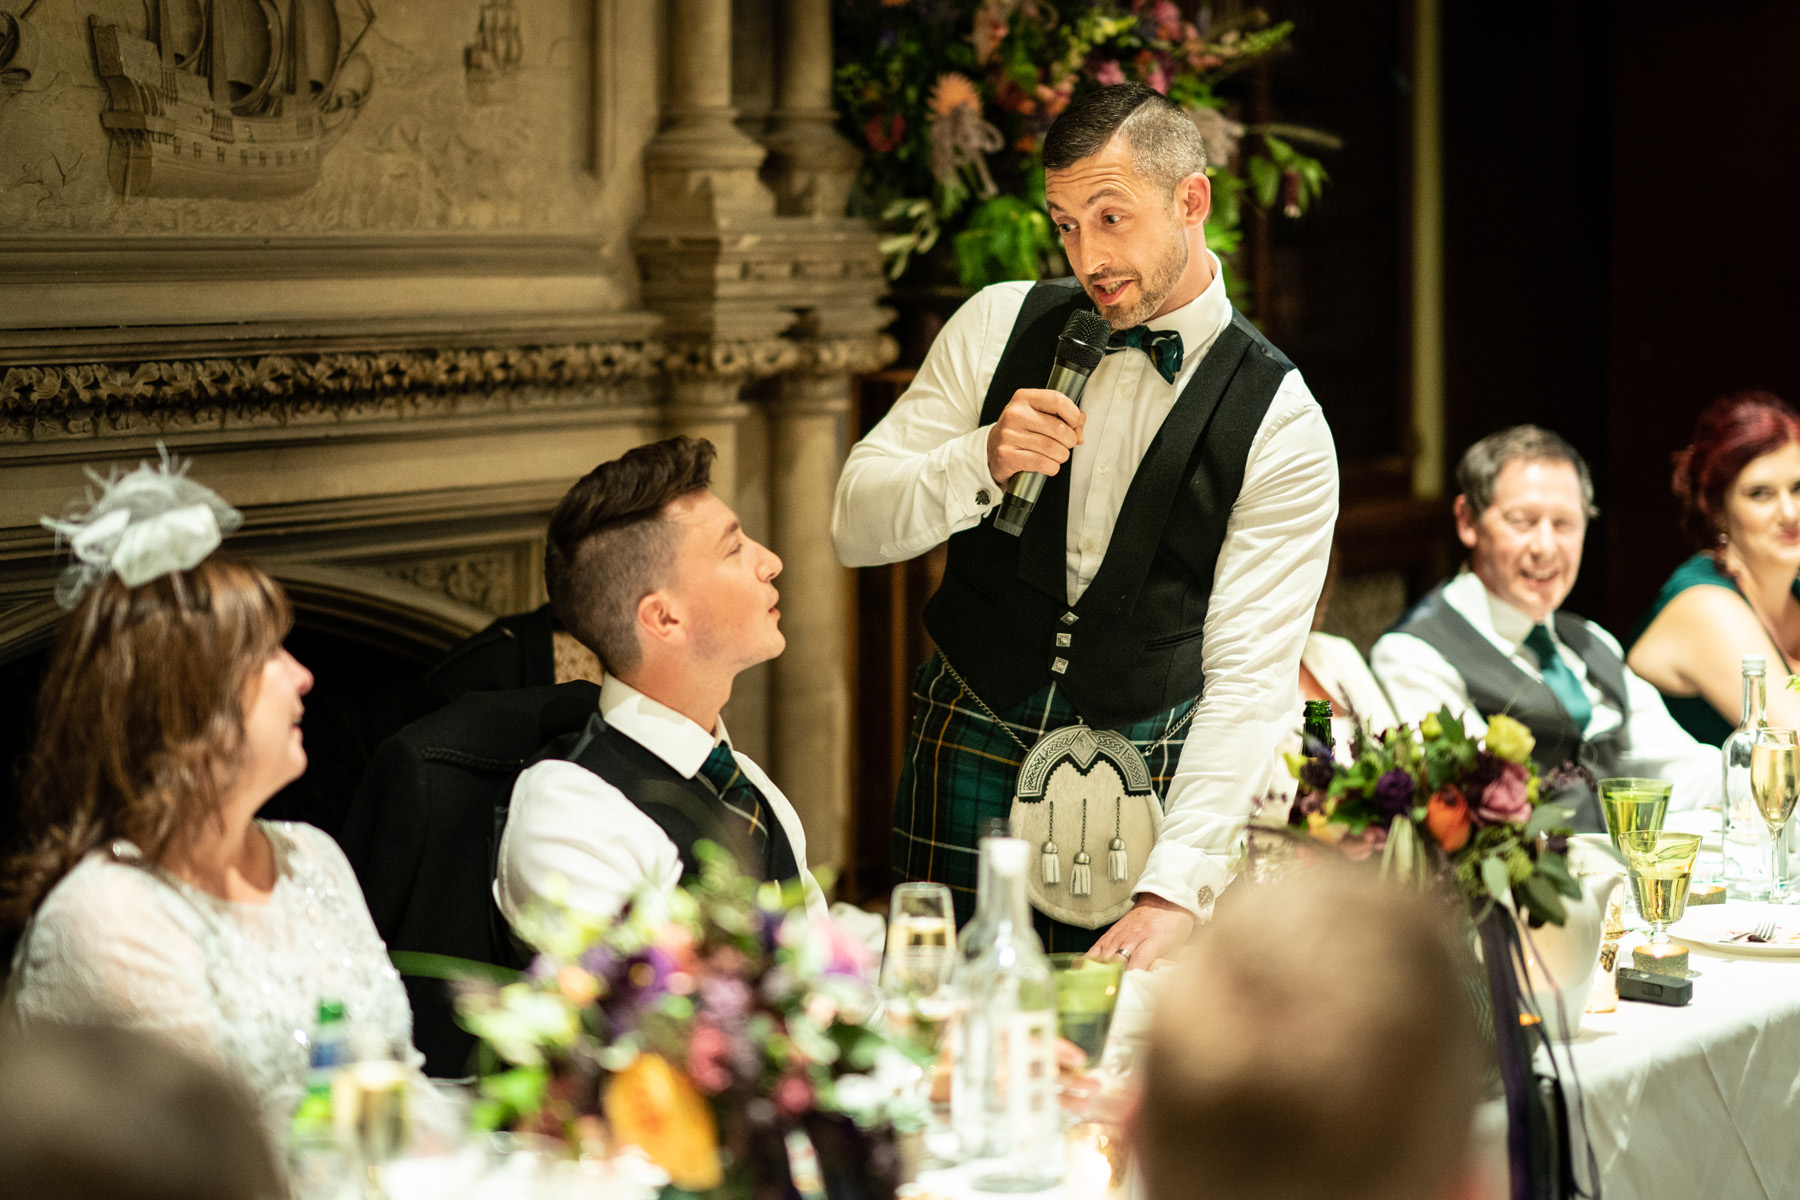 Groom looks at his new husband during the wedding speeches in the library at The Elvetham